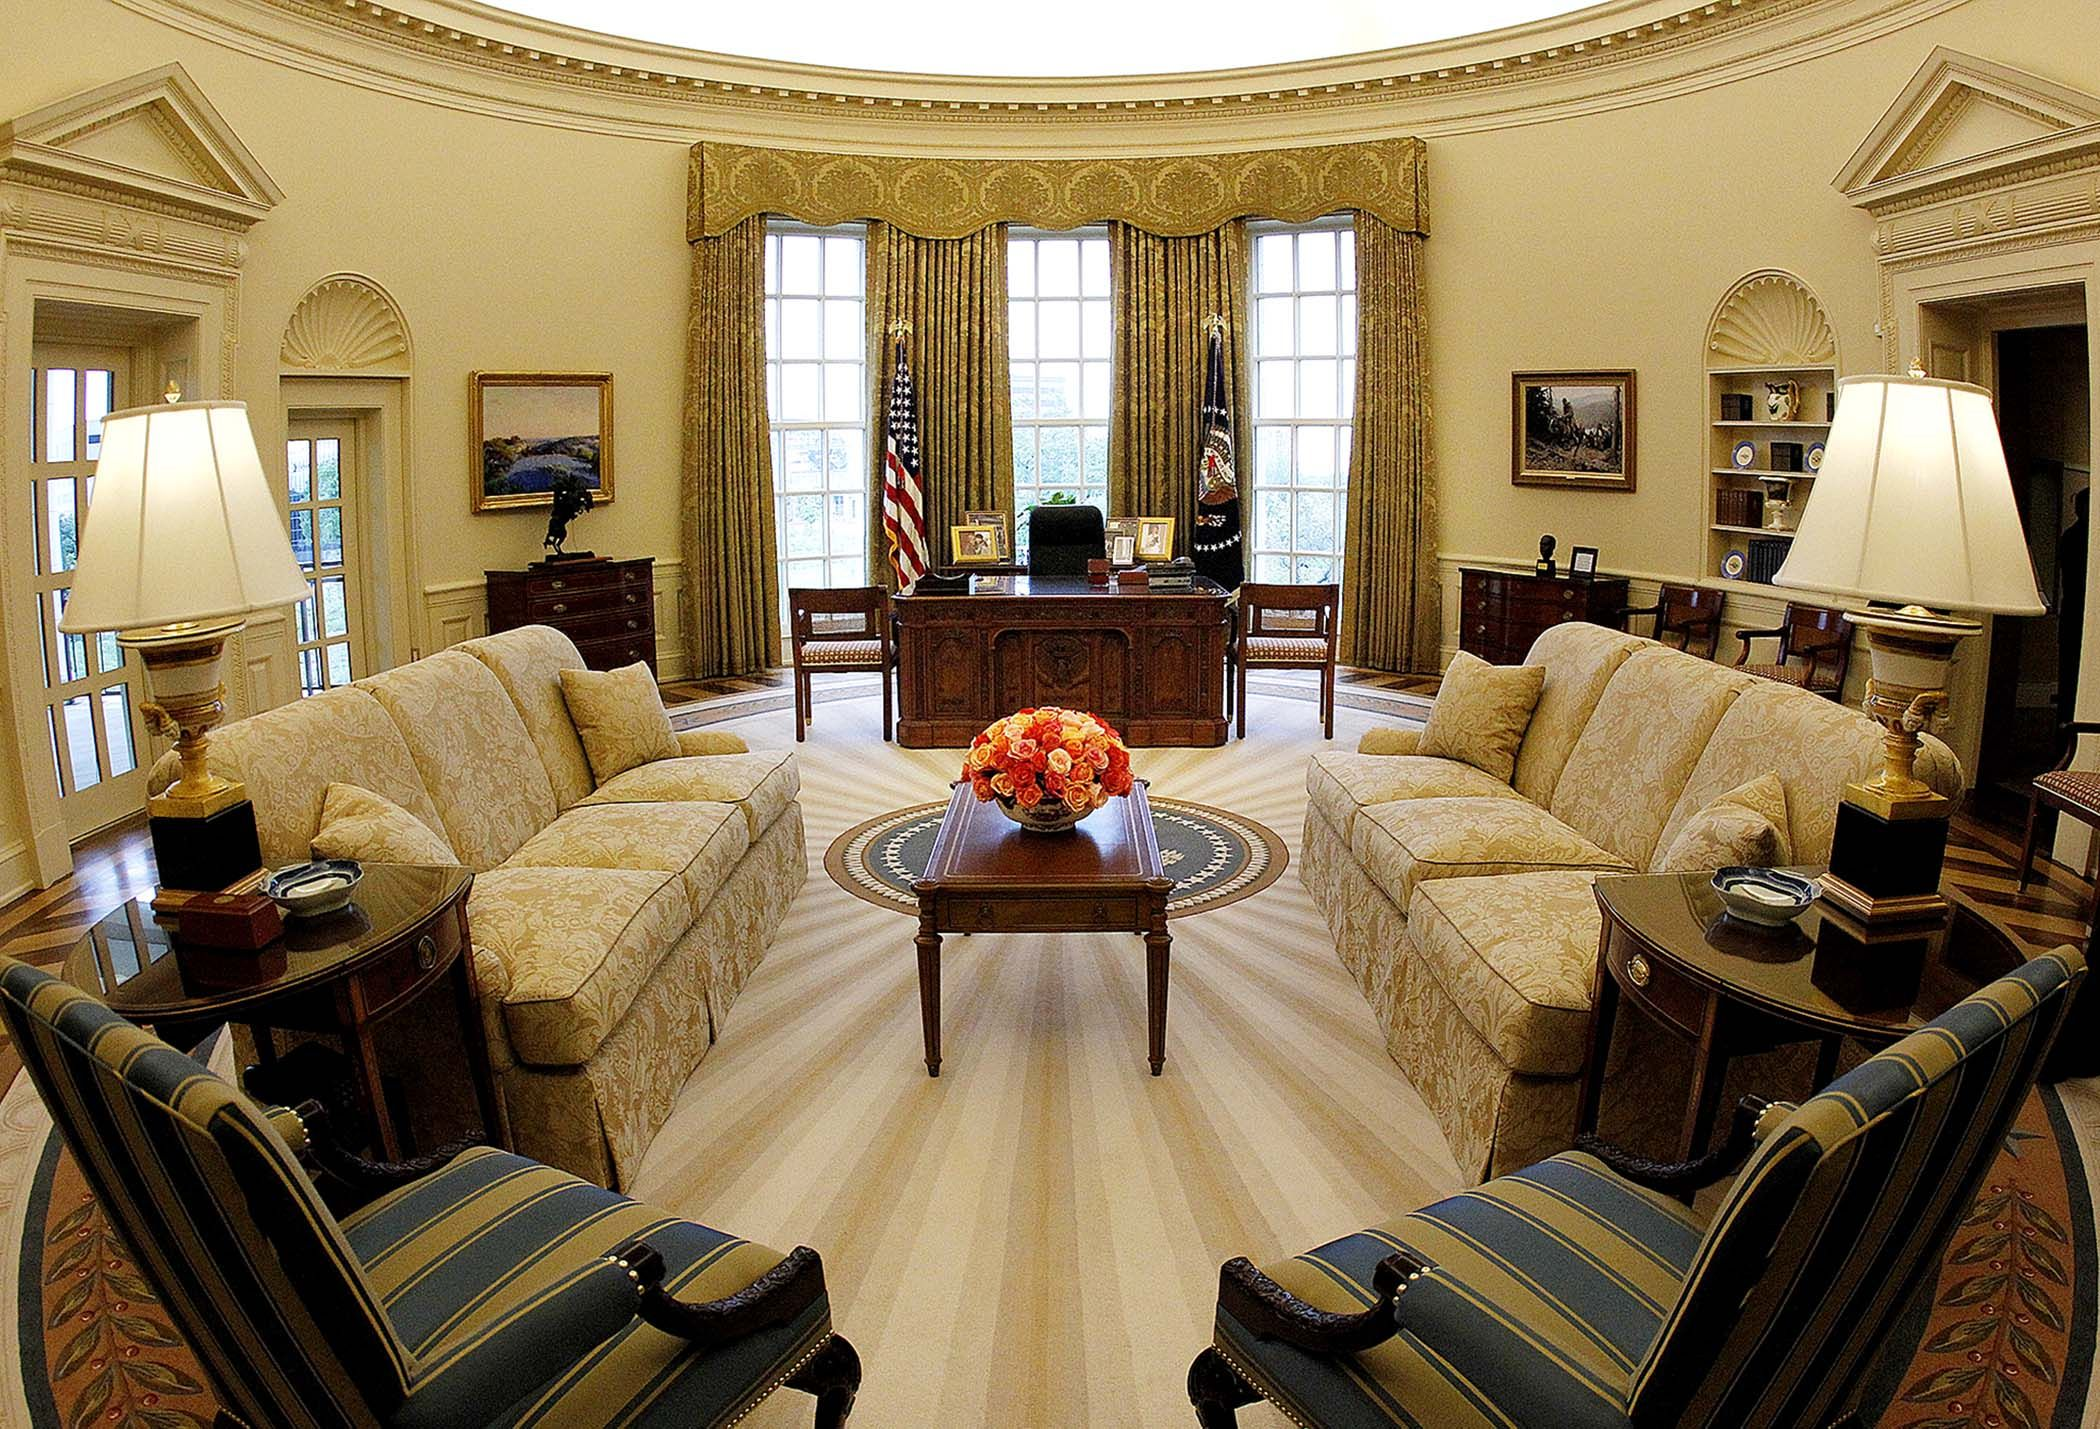 george bush oval office. George W. Bush Presidential Library \u0026 Museum. Dallas, Texas. Discover Dallas Tours Oval Office